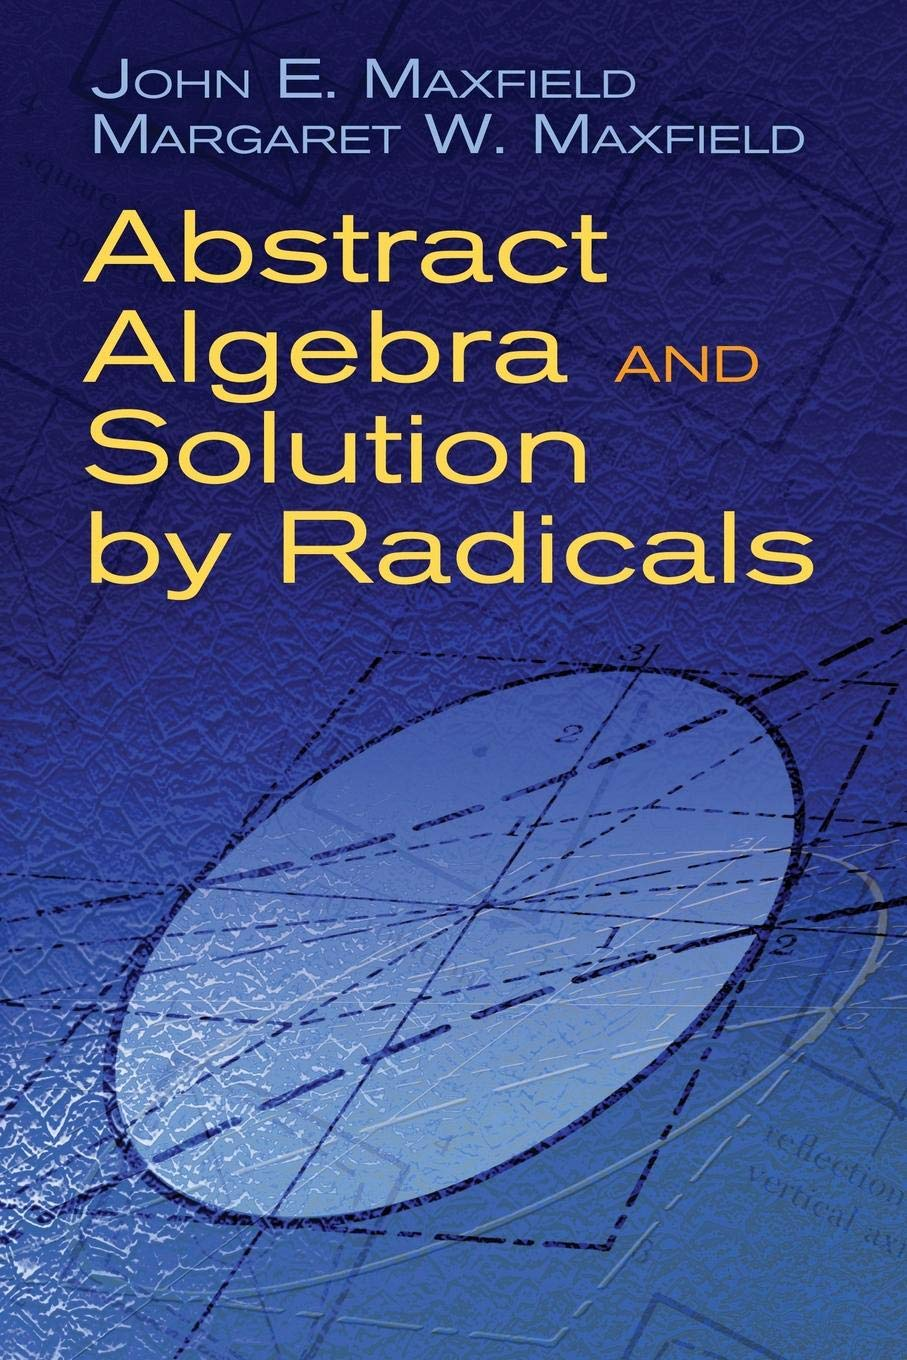 Abstract Algebra And Solution By Radicals  Dover Books On Mathematics